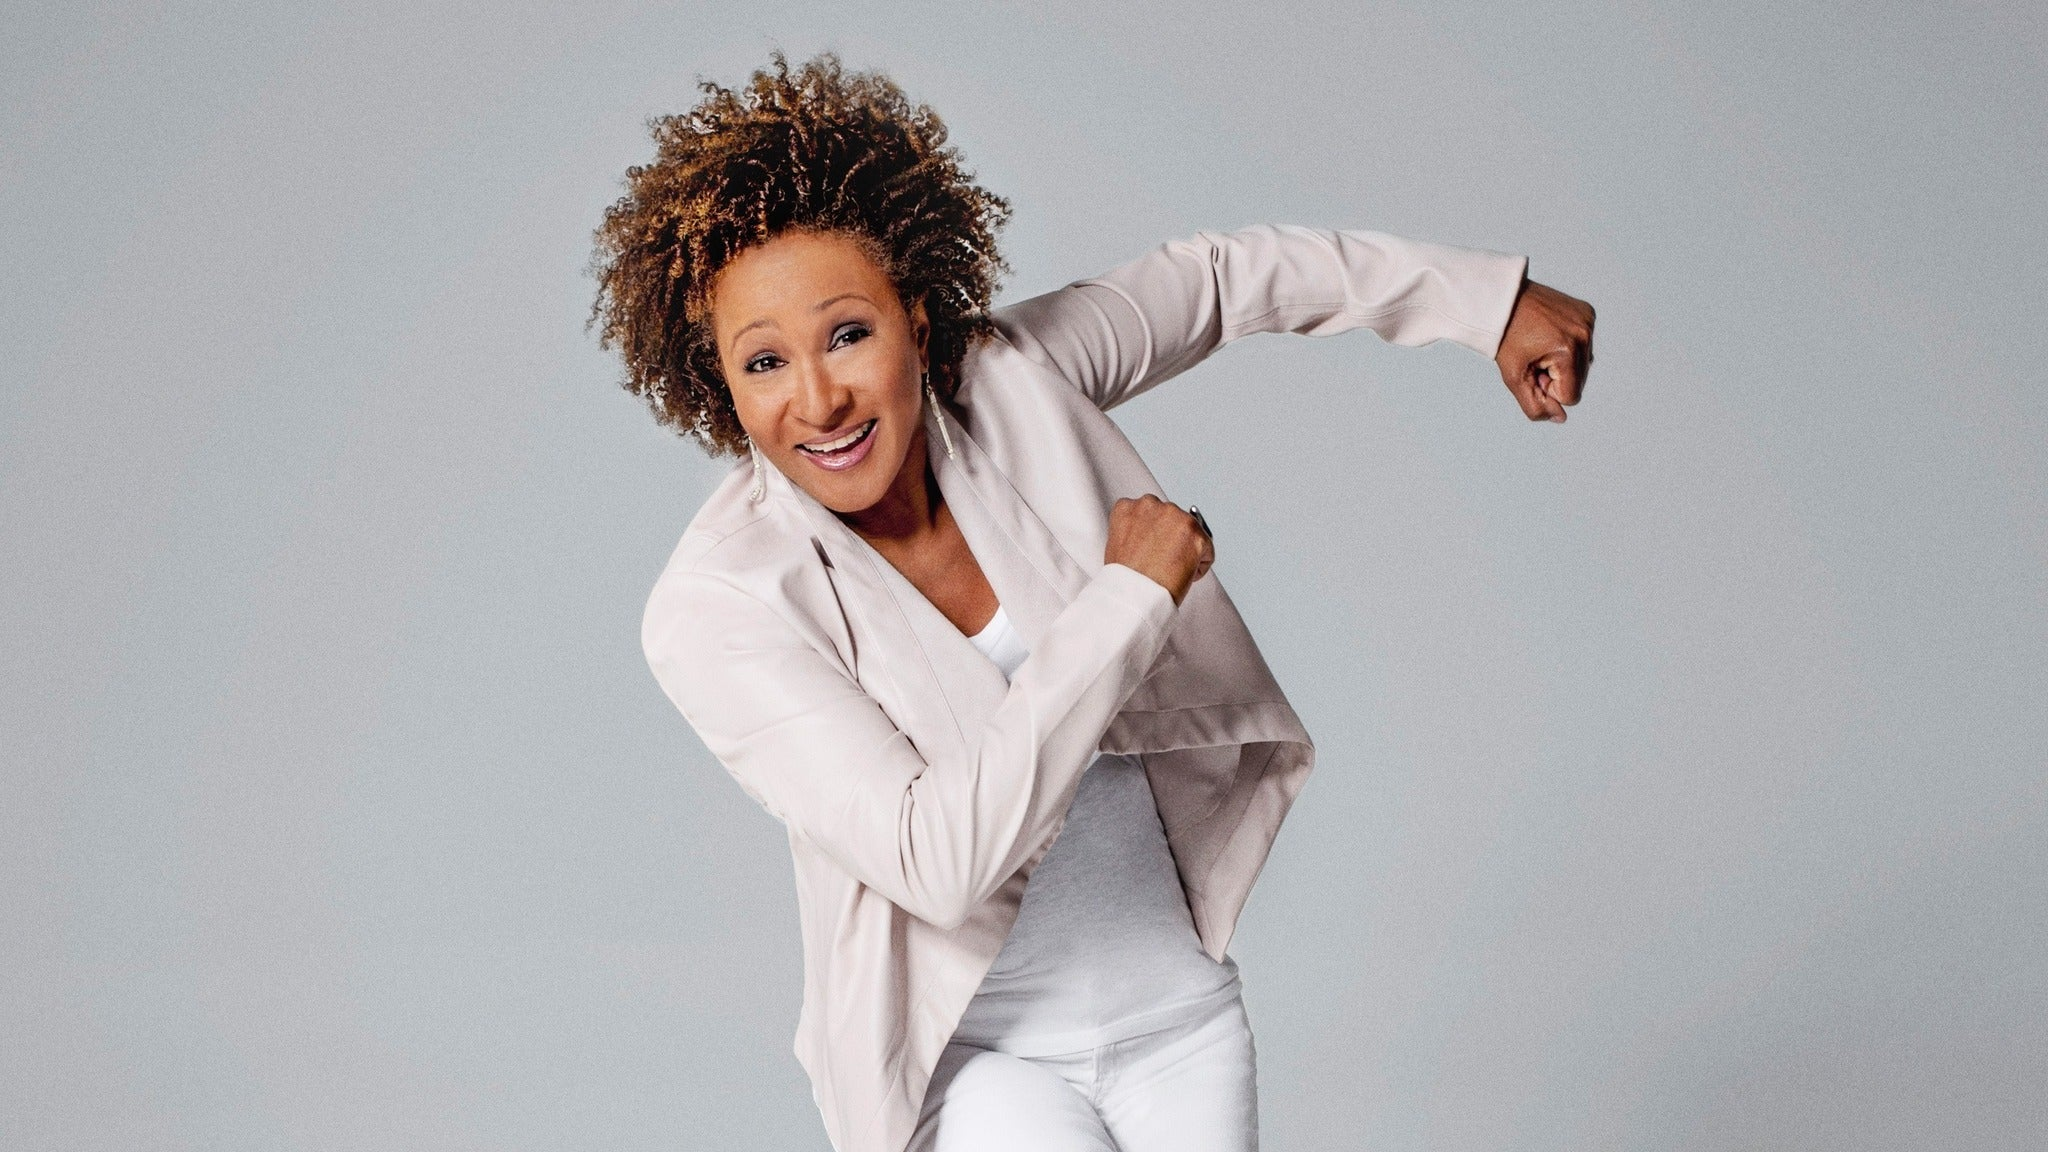 Wanda Sykes: Oh Well Tour at Paramount Theatre